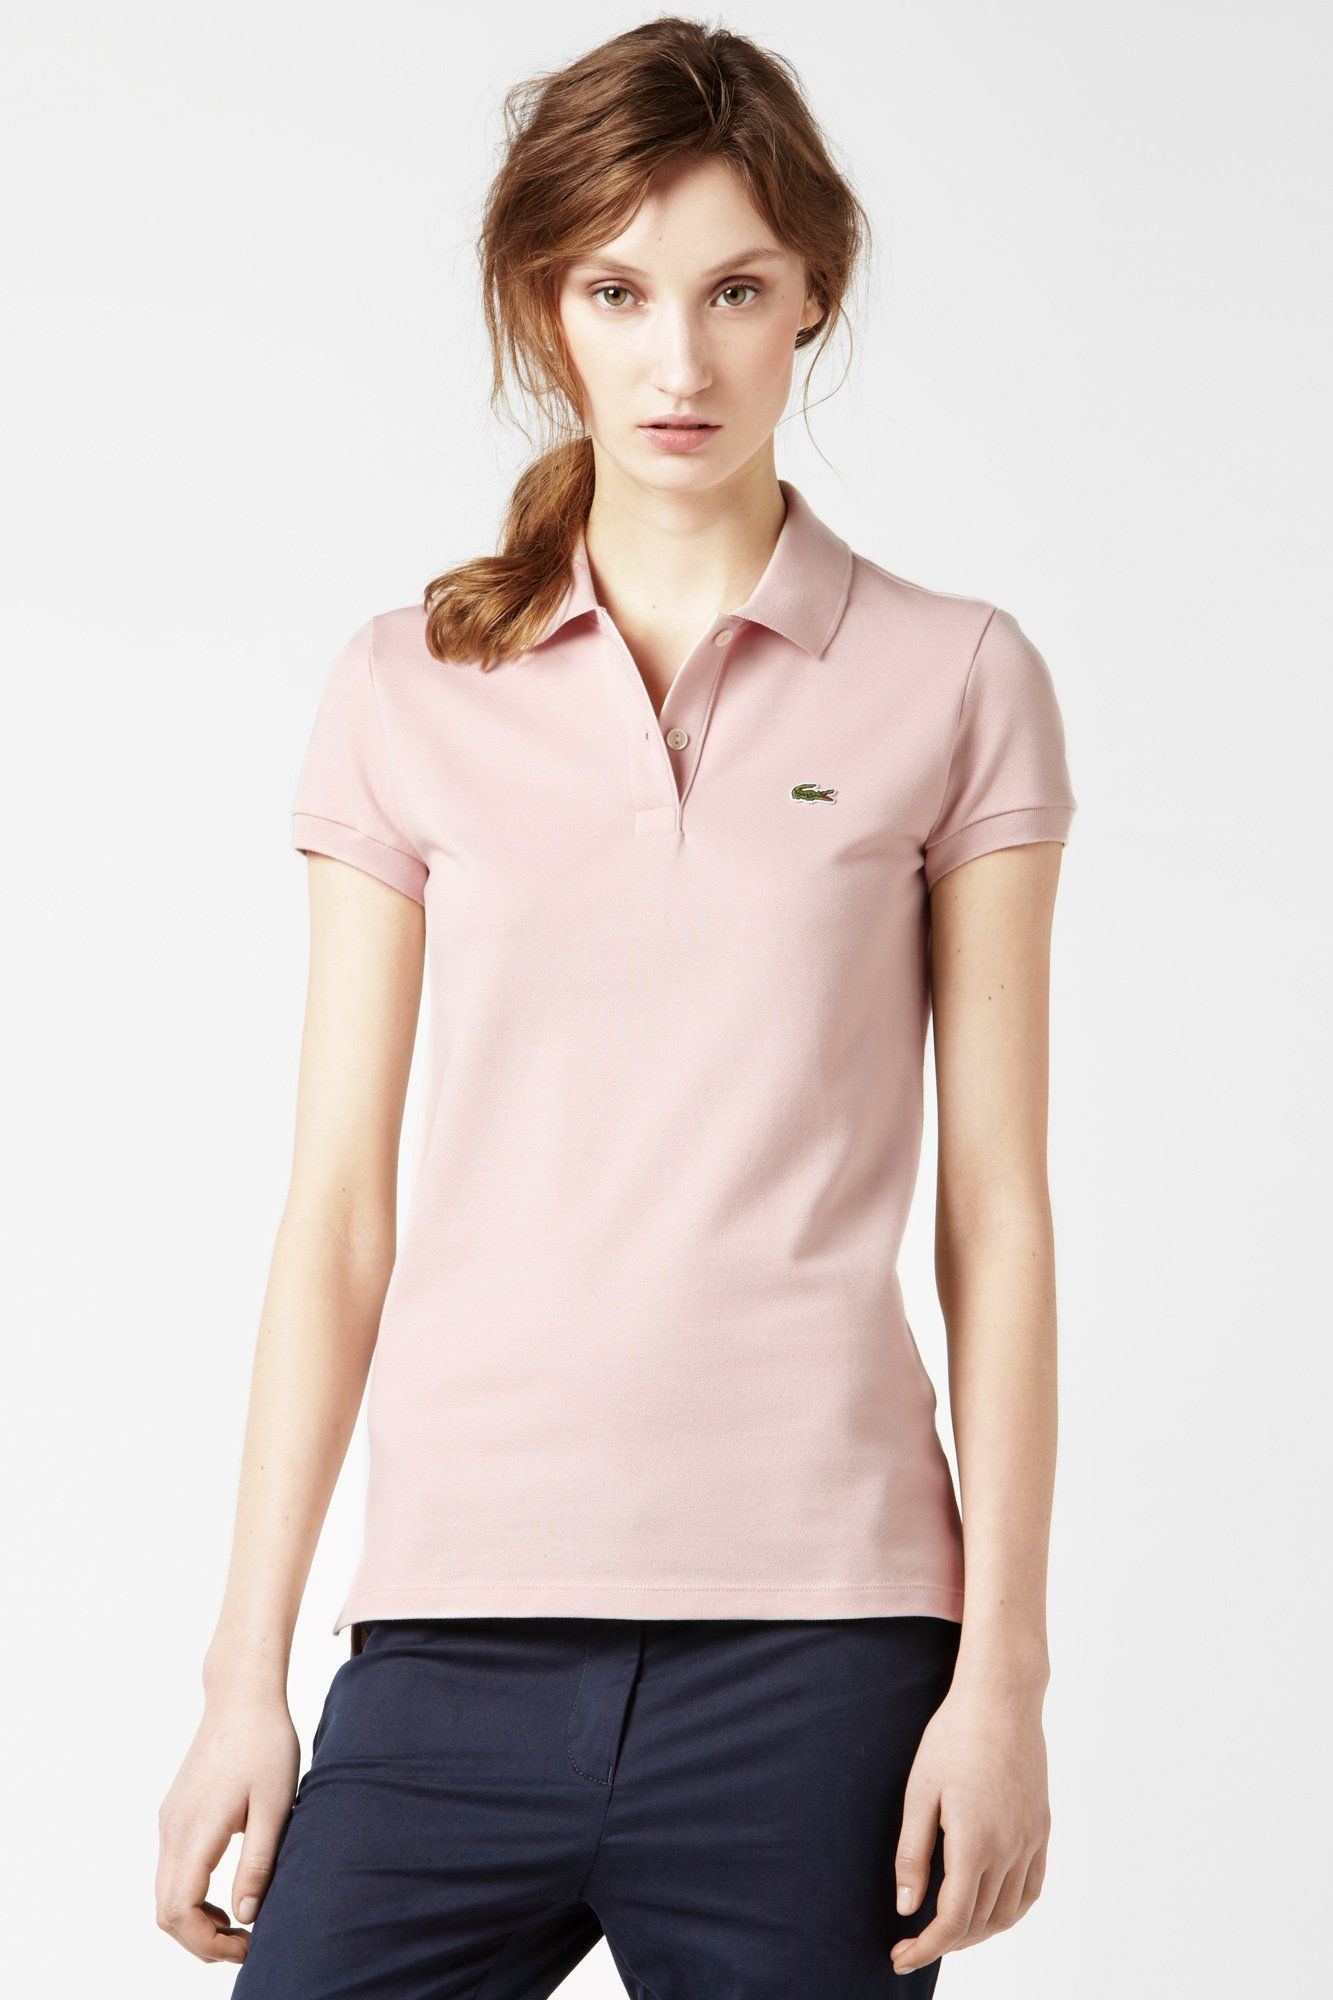 2f987b11f5a2 Pearl Pink Short Sleeve 2 Button Stretch Pique Polo Style   PF170F-51 Lacoste  Polo